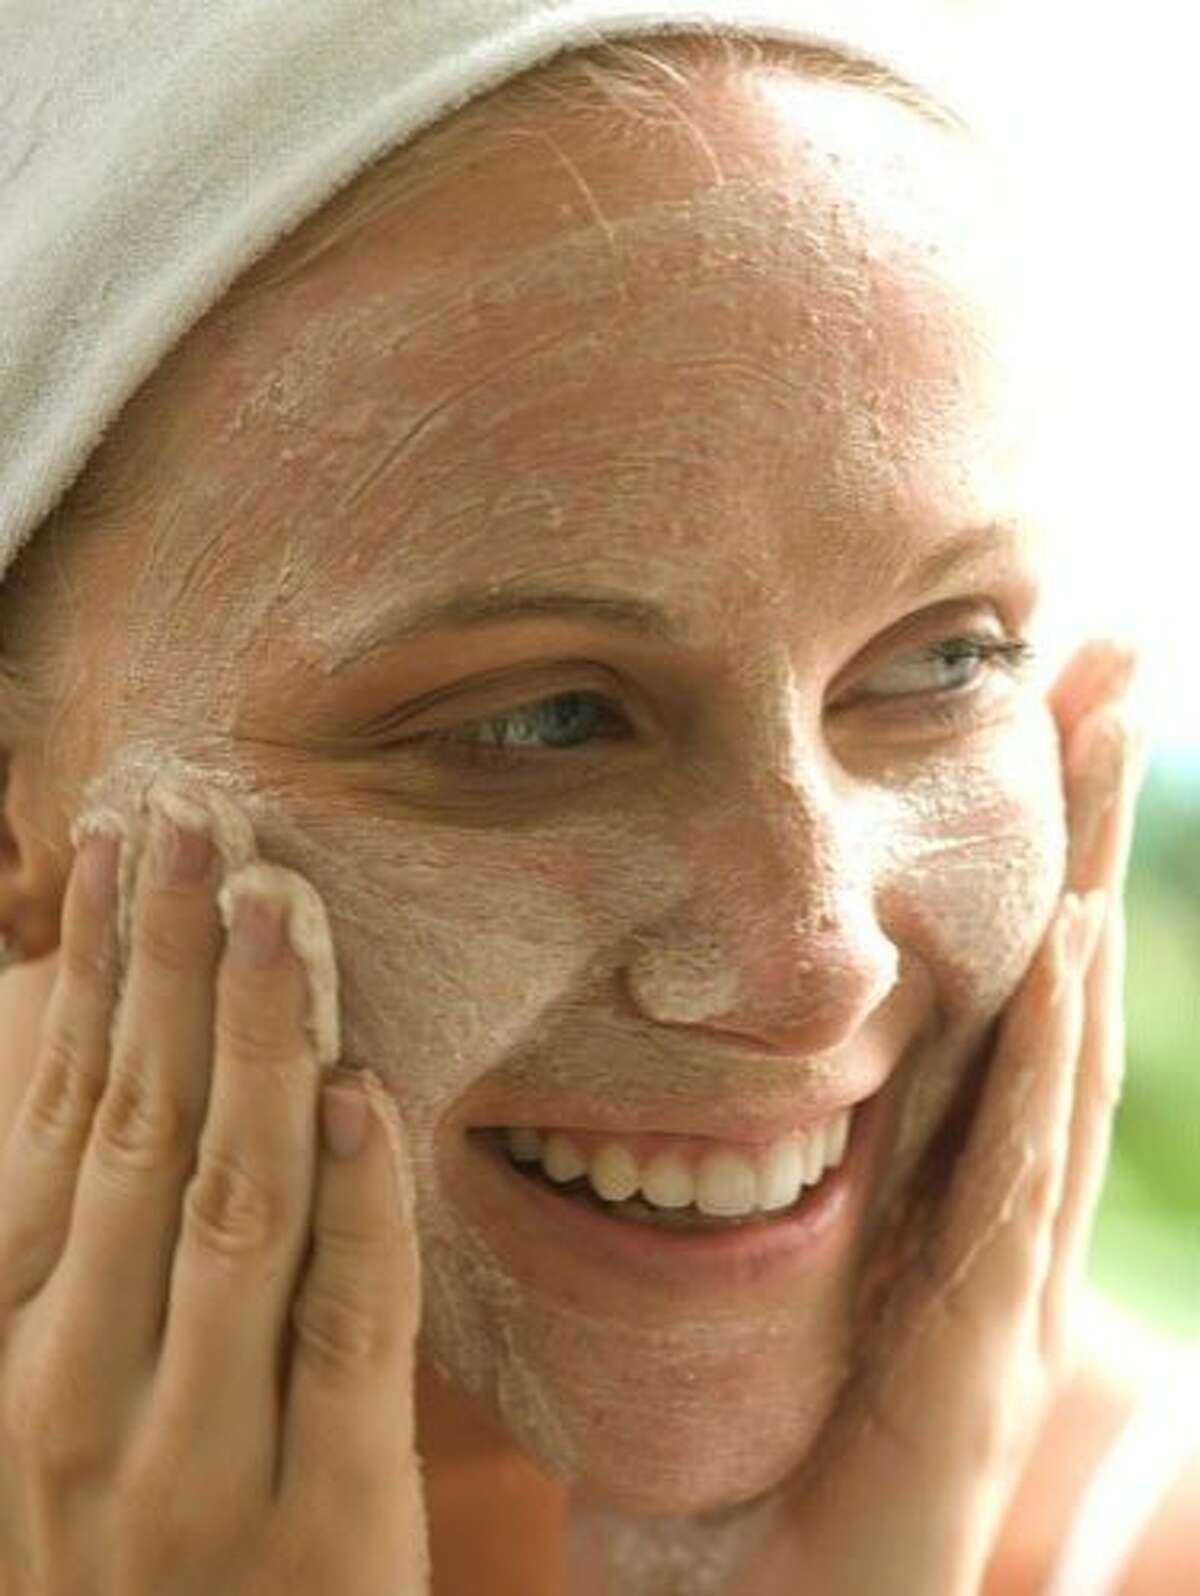 Don't neglect your face scrub: